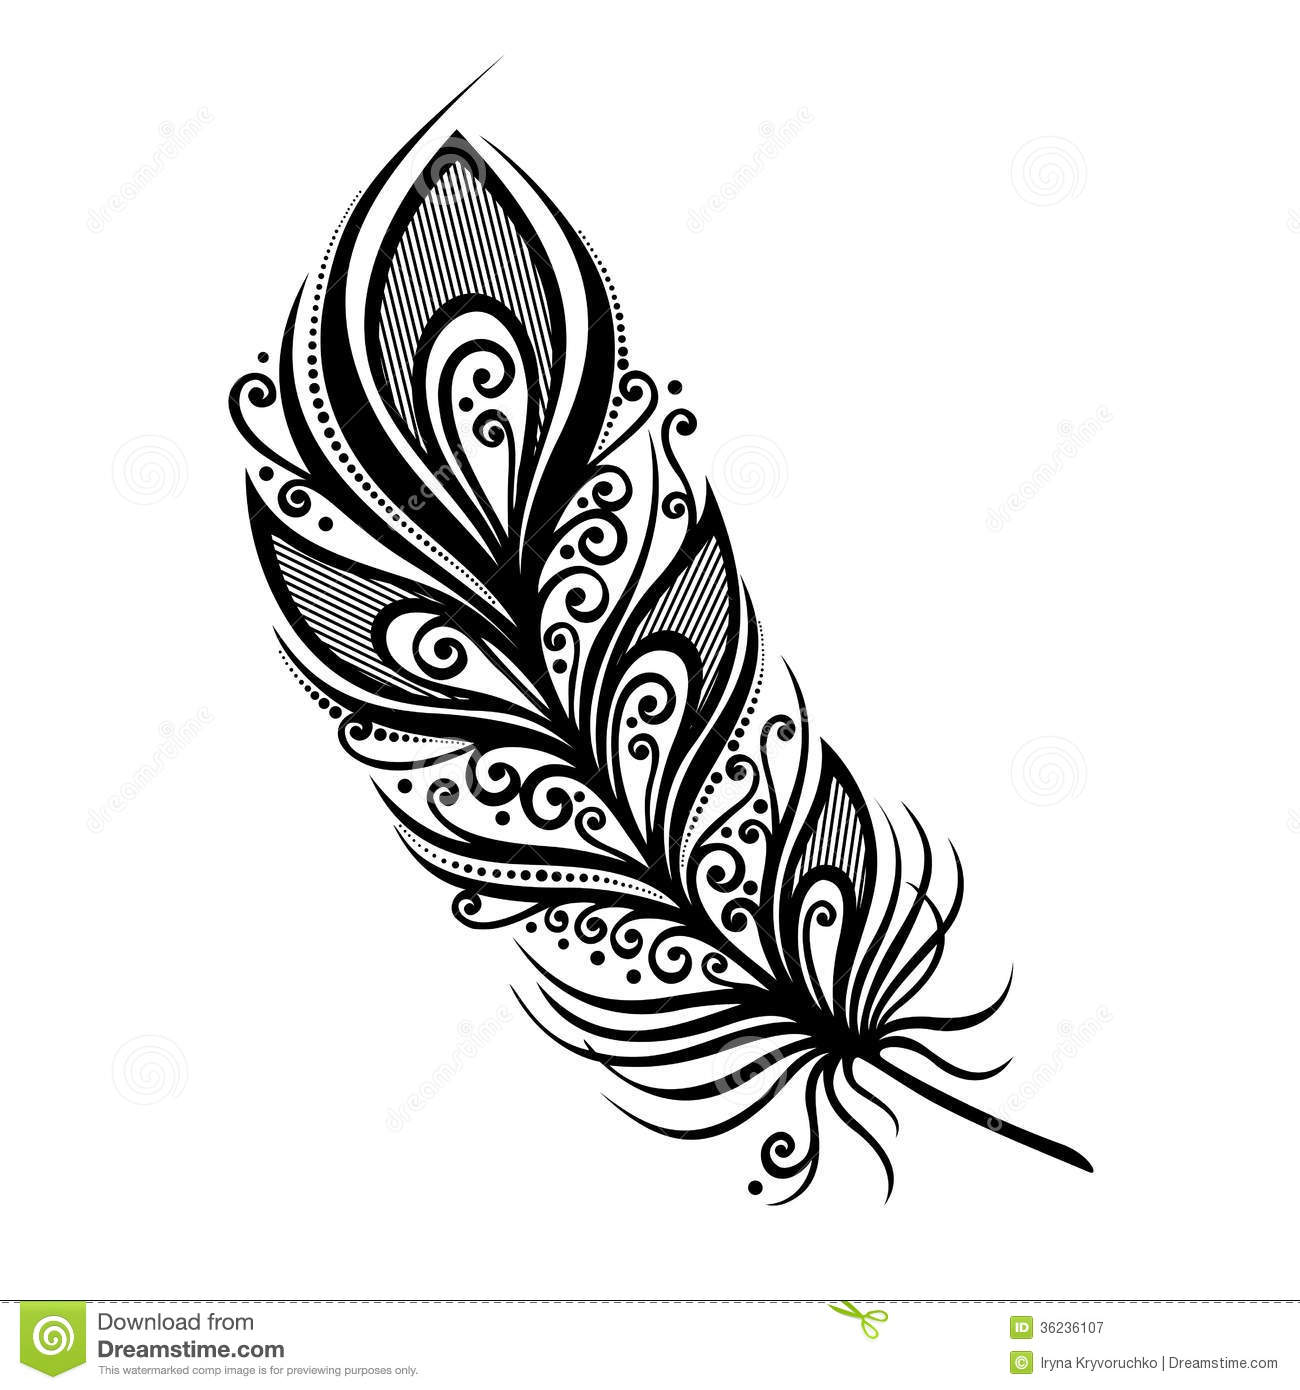 indian tribal feather outline clipart clipart suggest Indian Chief Headdress Tile Clip Art Skull Indian Headdress Clip Art